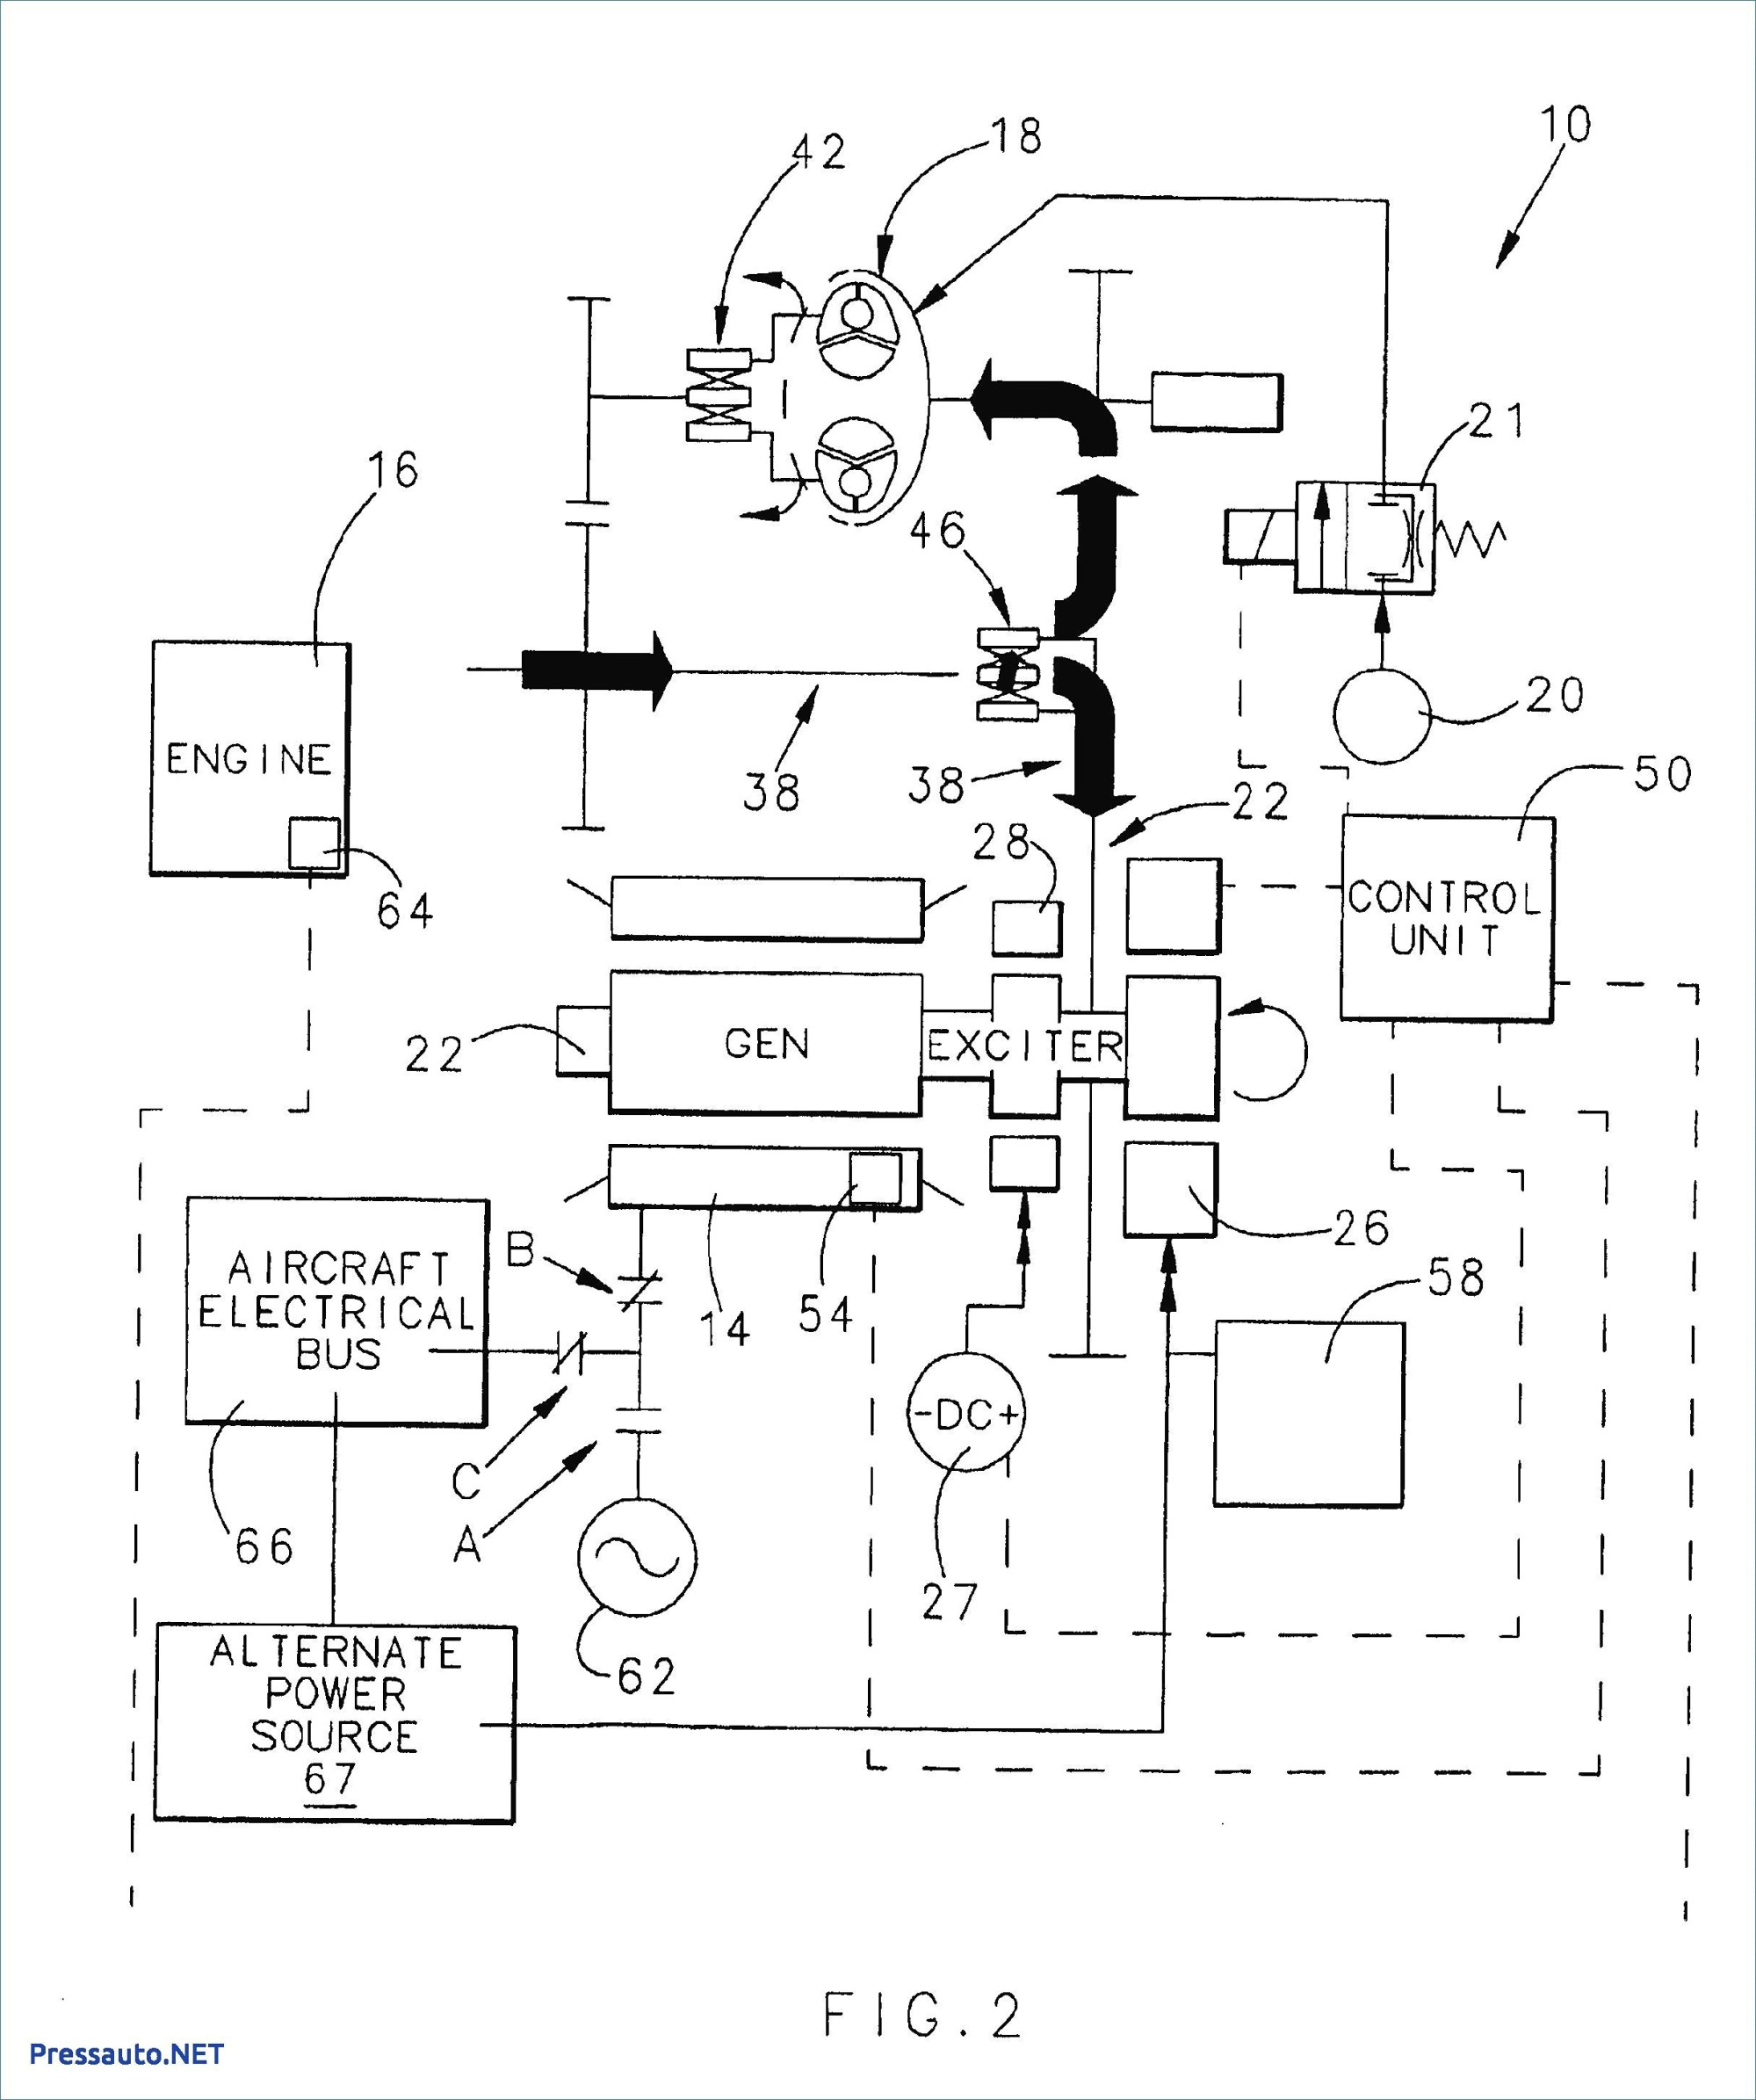 hight resolution of 2014 harley sportster wiring diagram davidson auto nos wiring diagram harley davidson auto diagrams